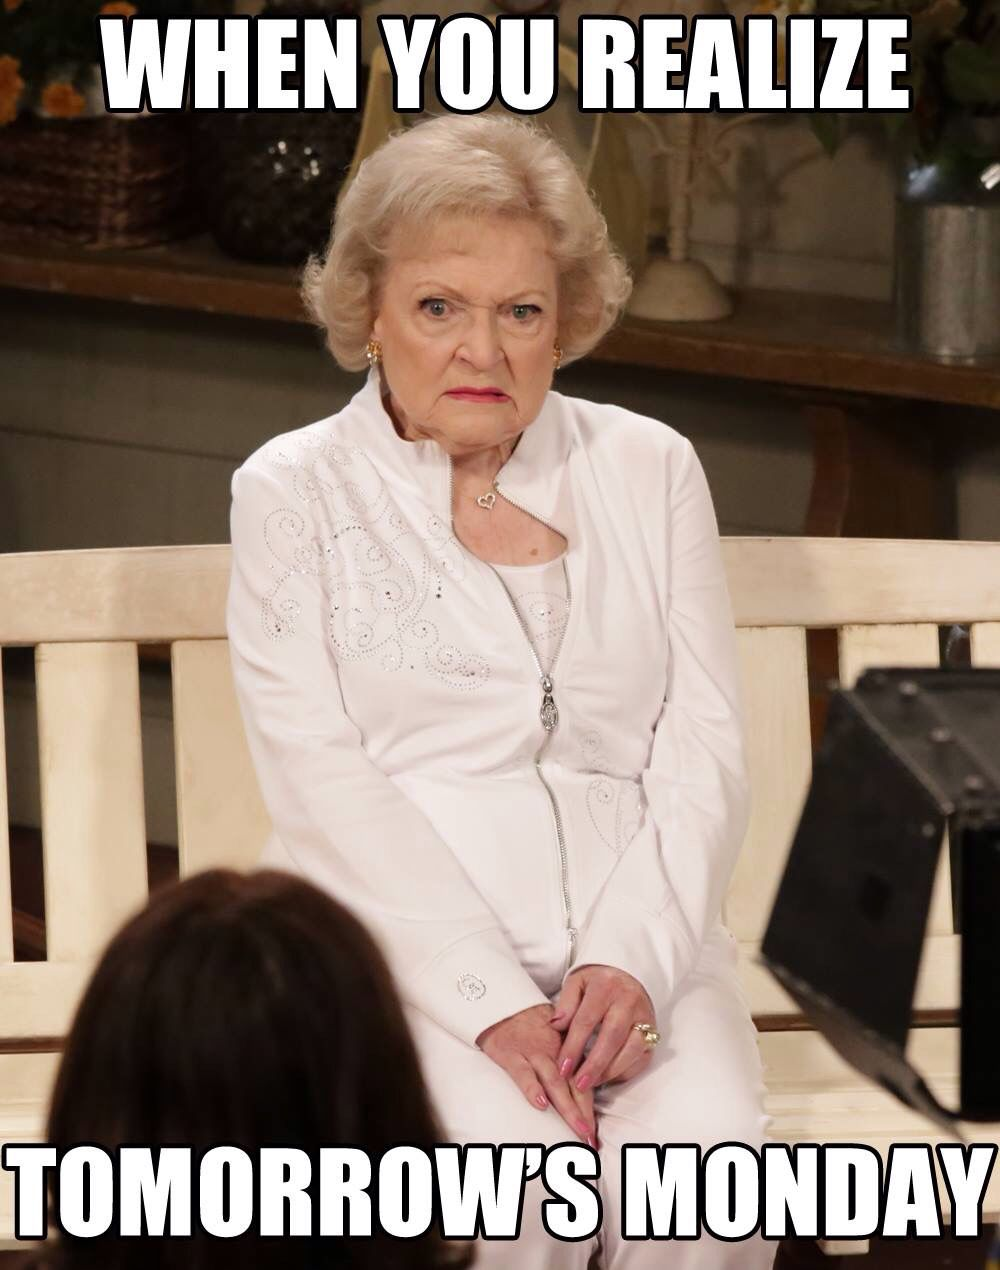 Monday Boo! Betty White's face Can't. Stop. Laughing